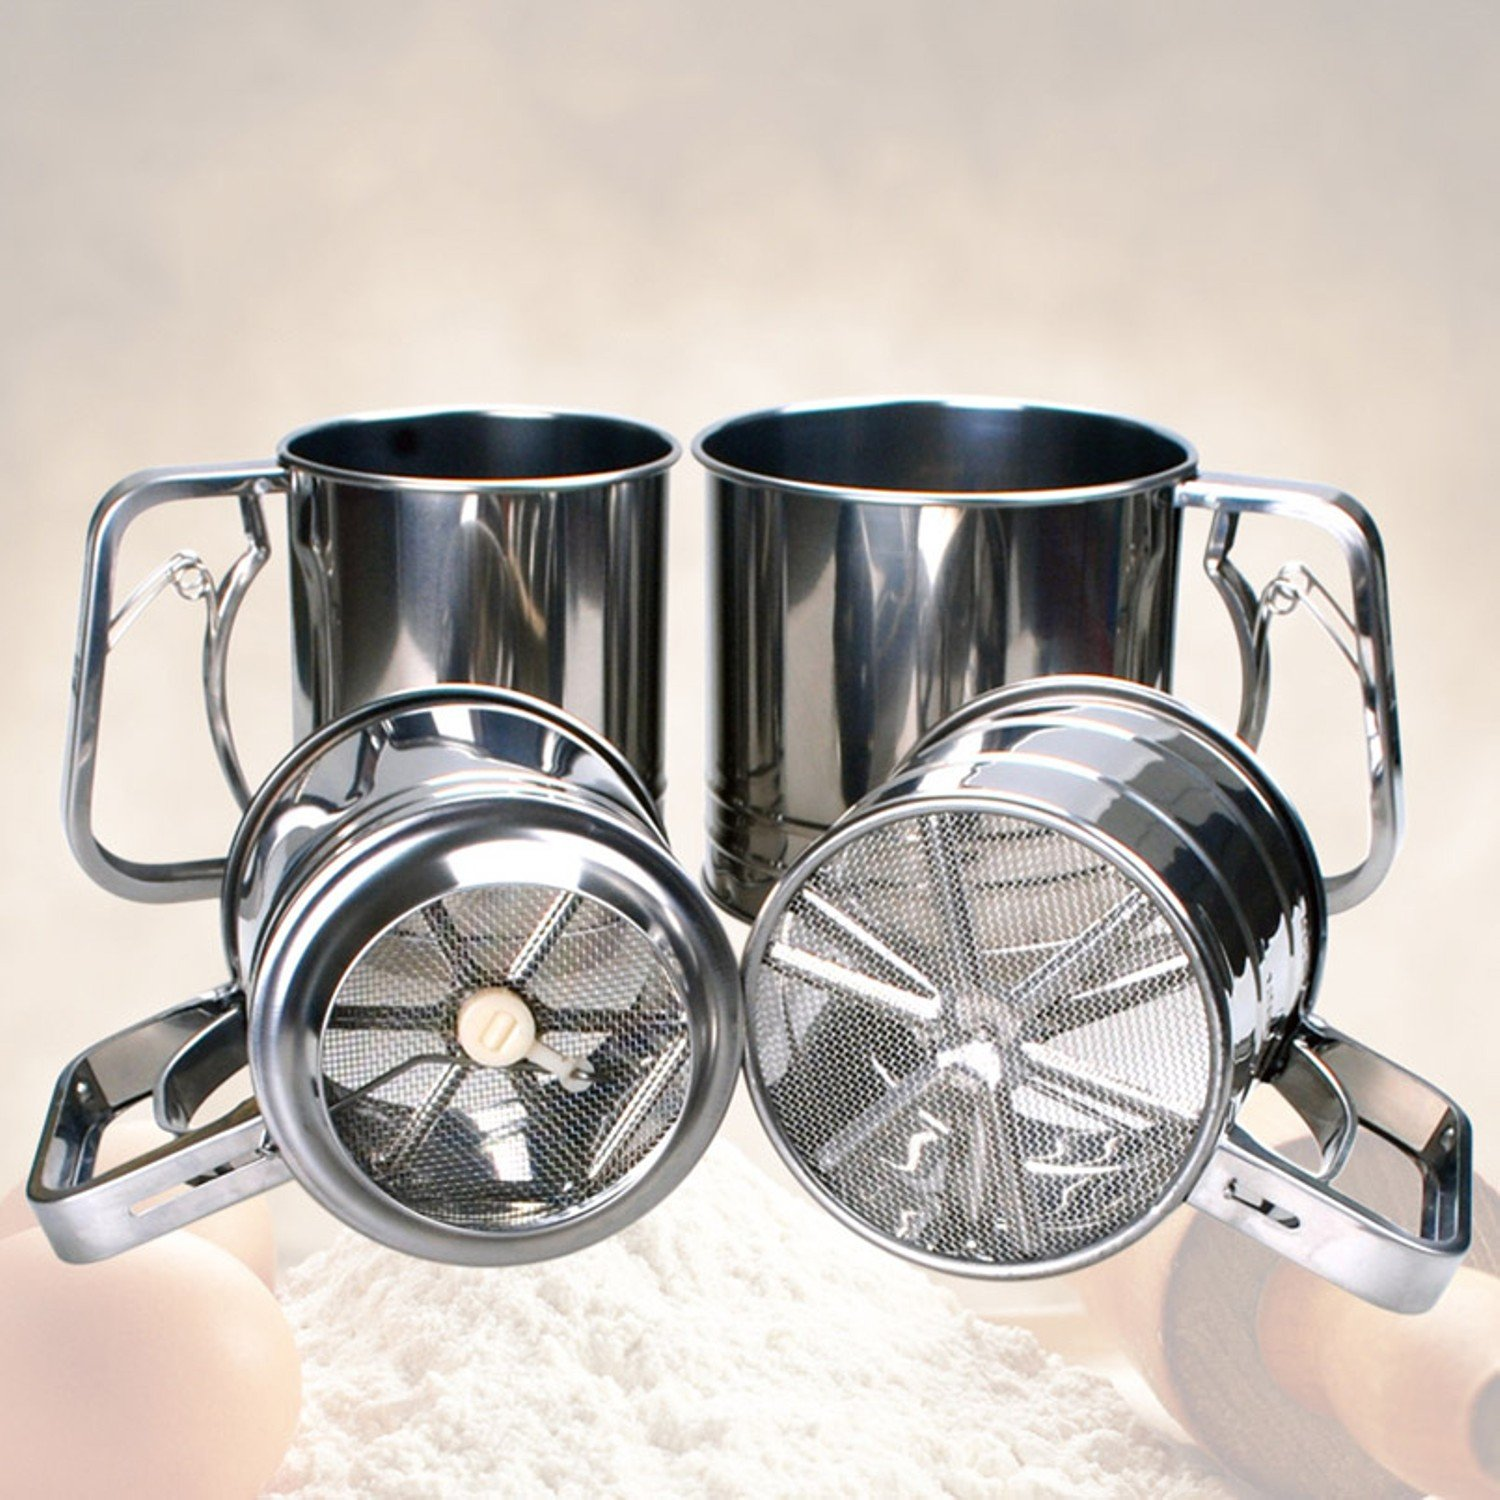 Convenient Flour Sifter Mug Shaped Large capacity Scale Show Dense Mesh Single-deck Coffee Sugar Powder Dusting Filtering Sieve Tool by Gogil (Image #3)